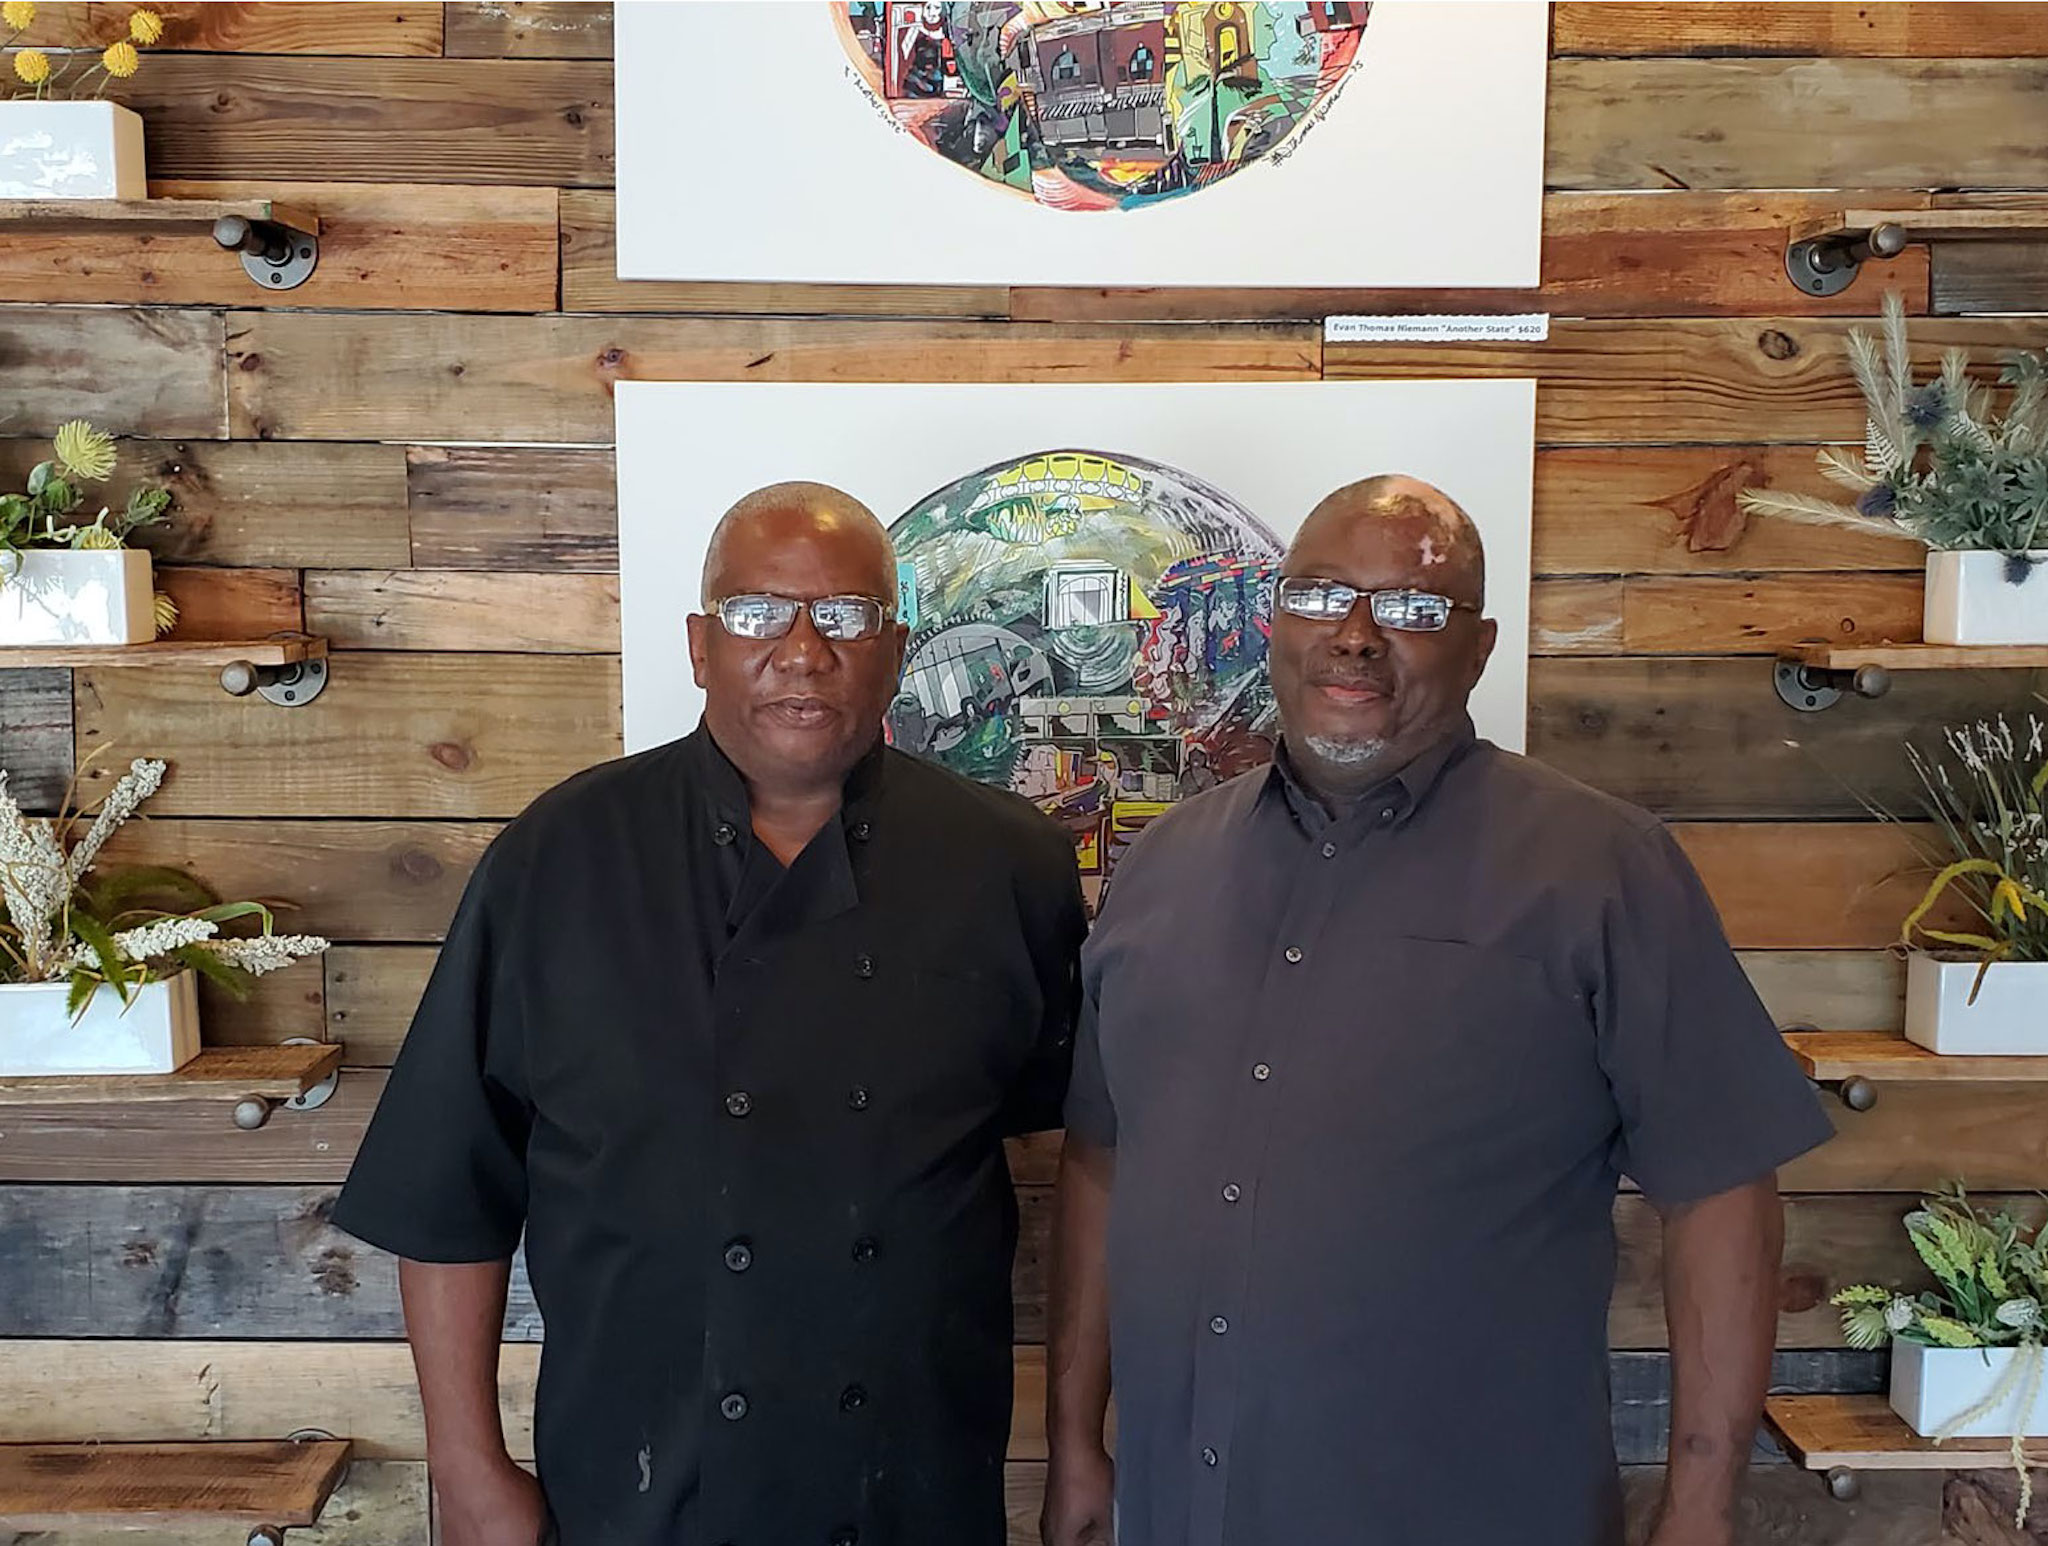 Brothers William and Bryan Graveley of Betterway BBQ